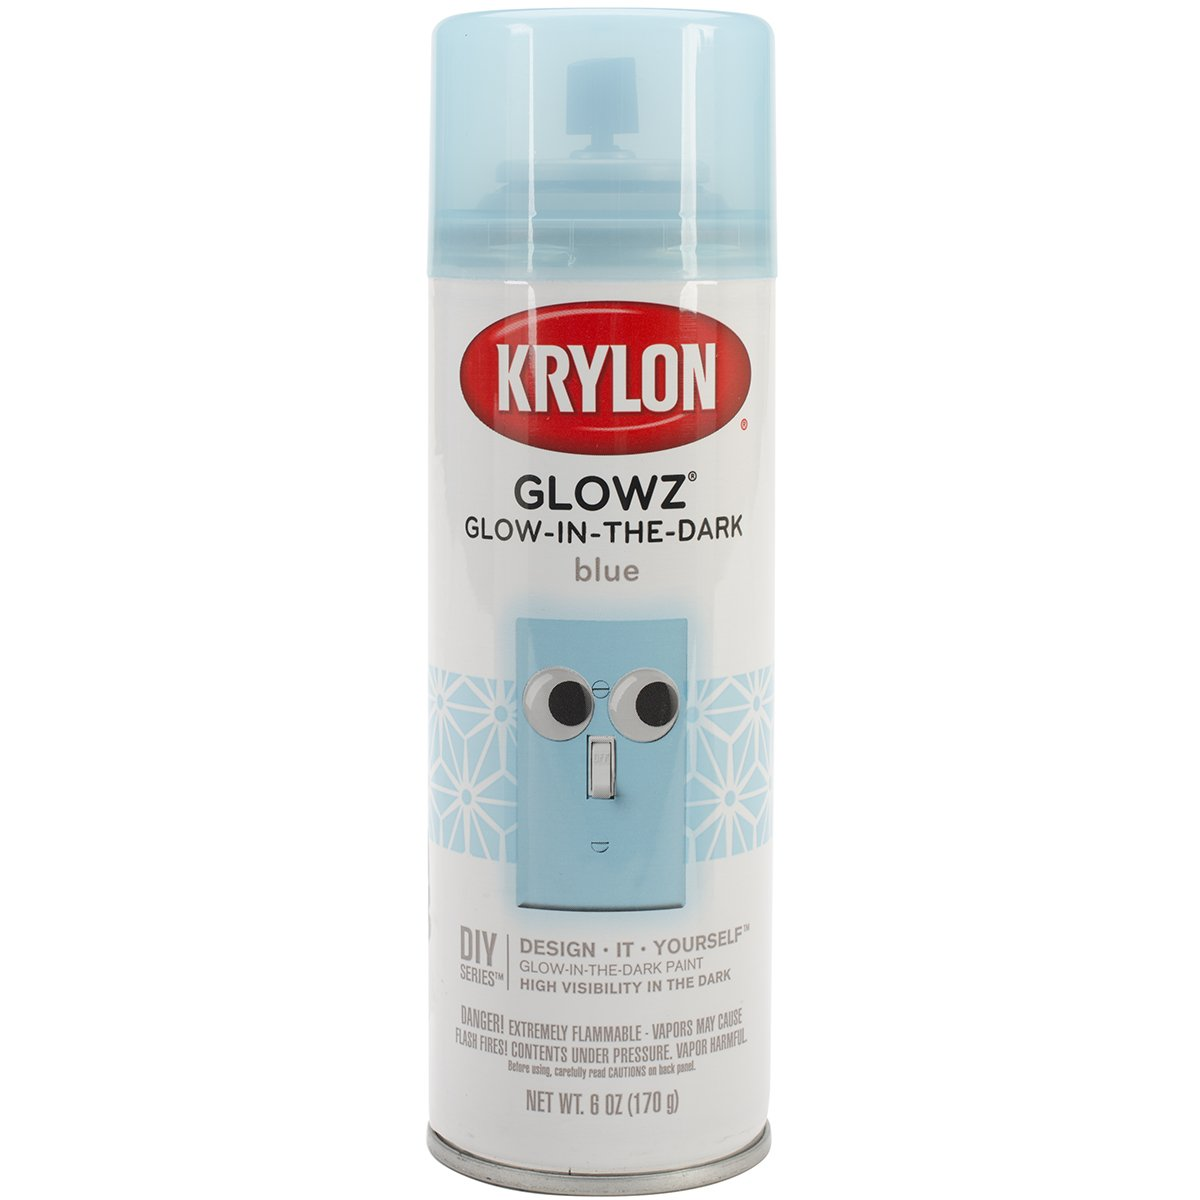 Krylon Darice Glowz Glow-in-The-Dark Spray Paint - Blue - 6 Oz